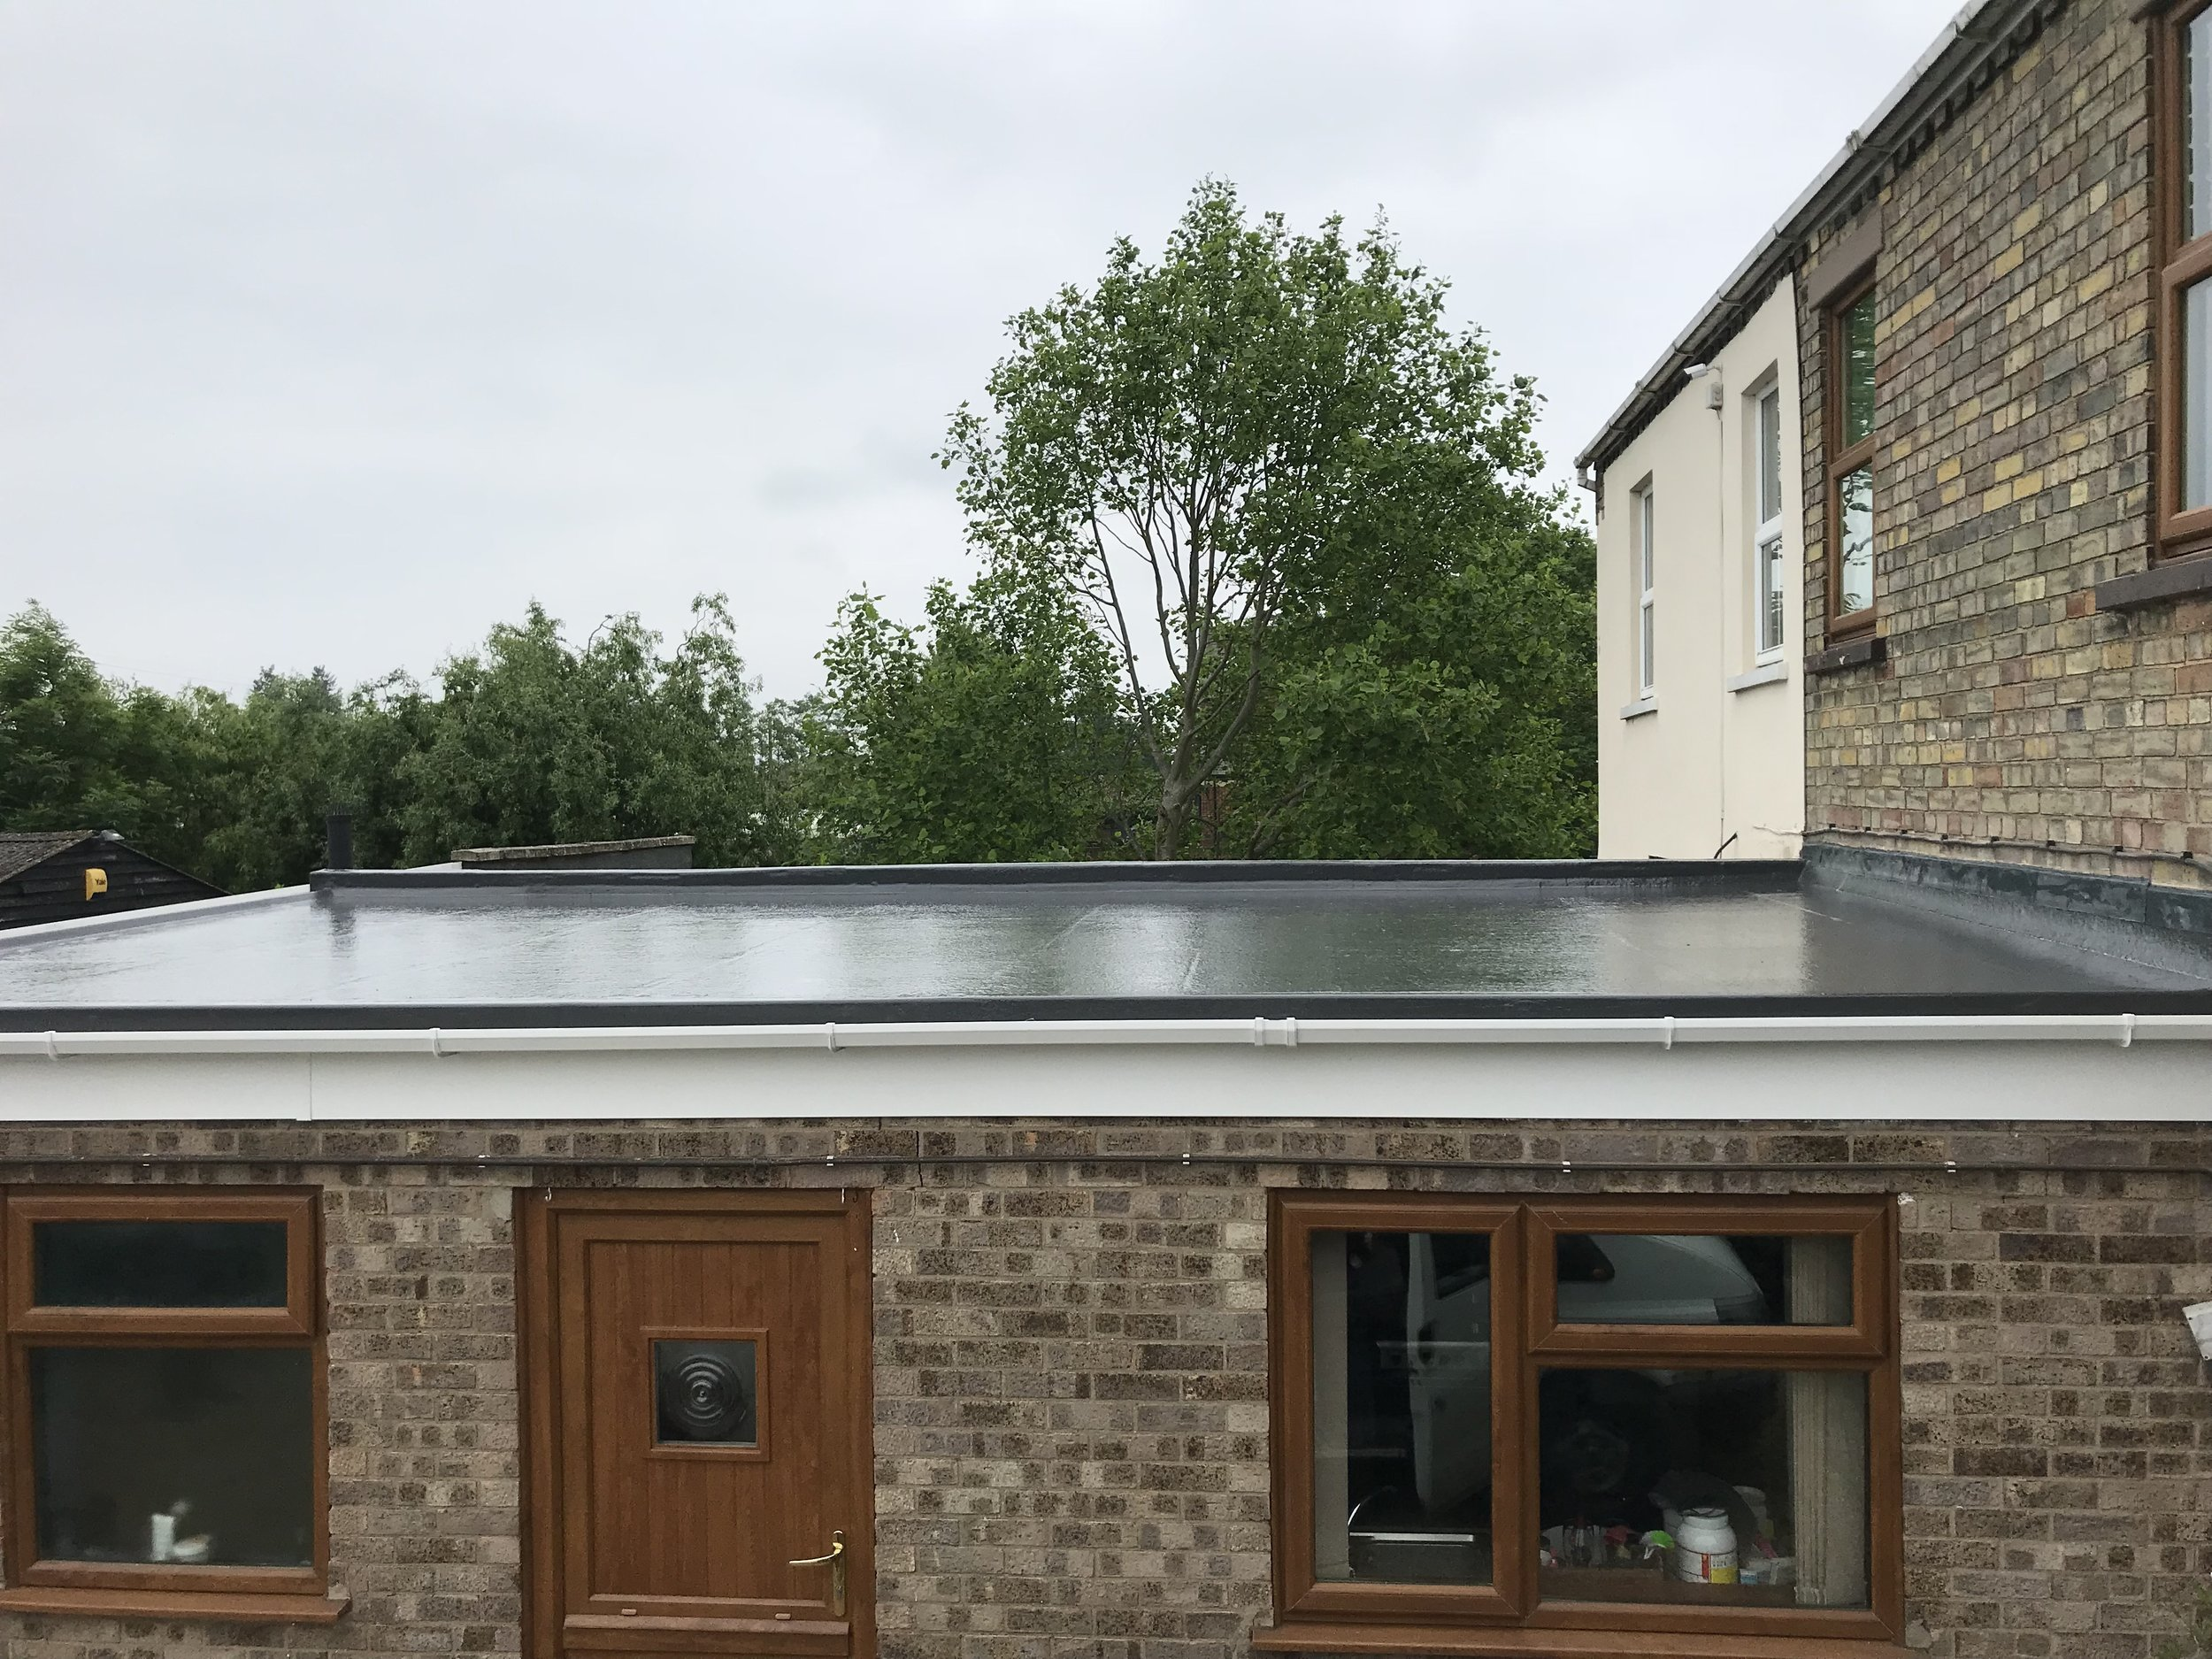 Warm Roof Installations - Energy saving Flat roofs, adding comfort and warmth to your living space. All associated fascia and guttering work is included in this service.